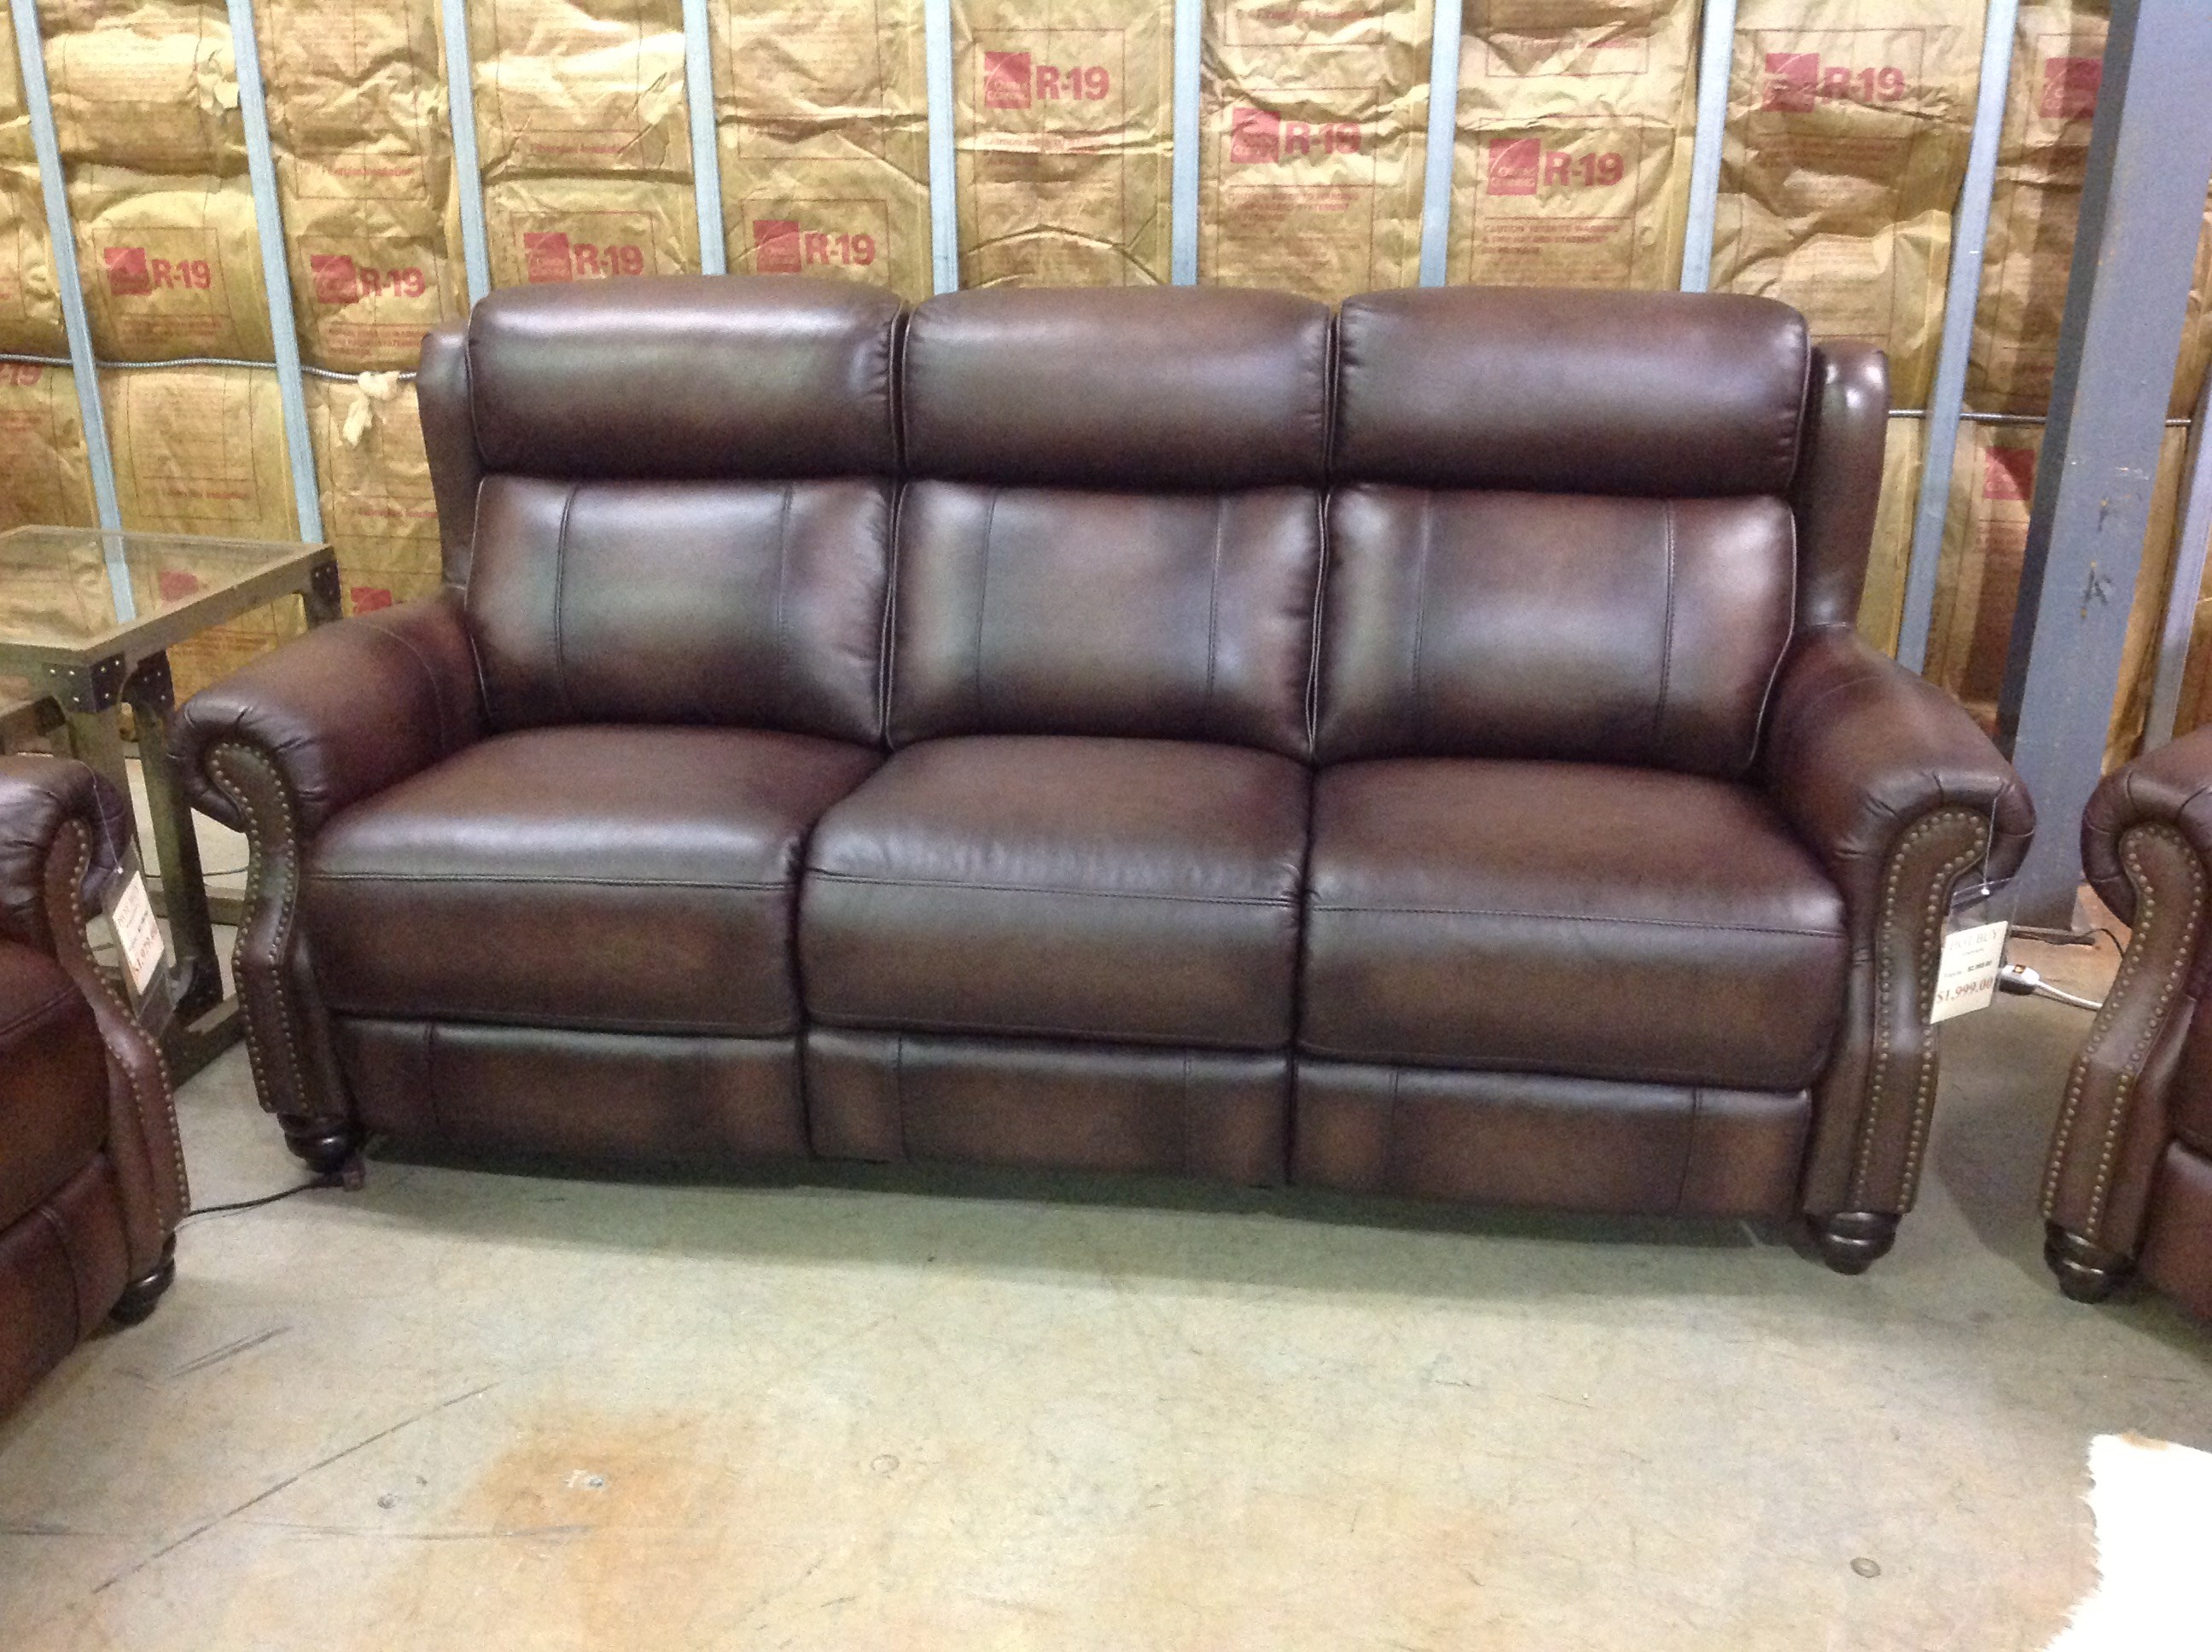 Sofa outlet gallery of boston discount furniture sofa for Sofa outlet hamburg